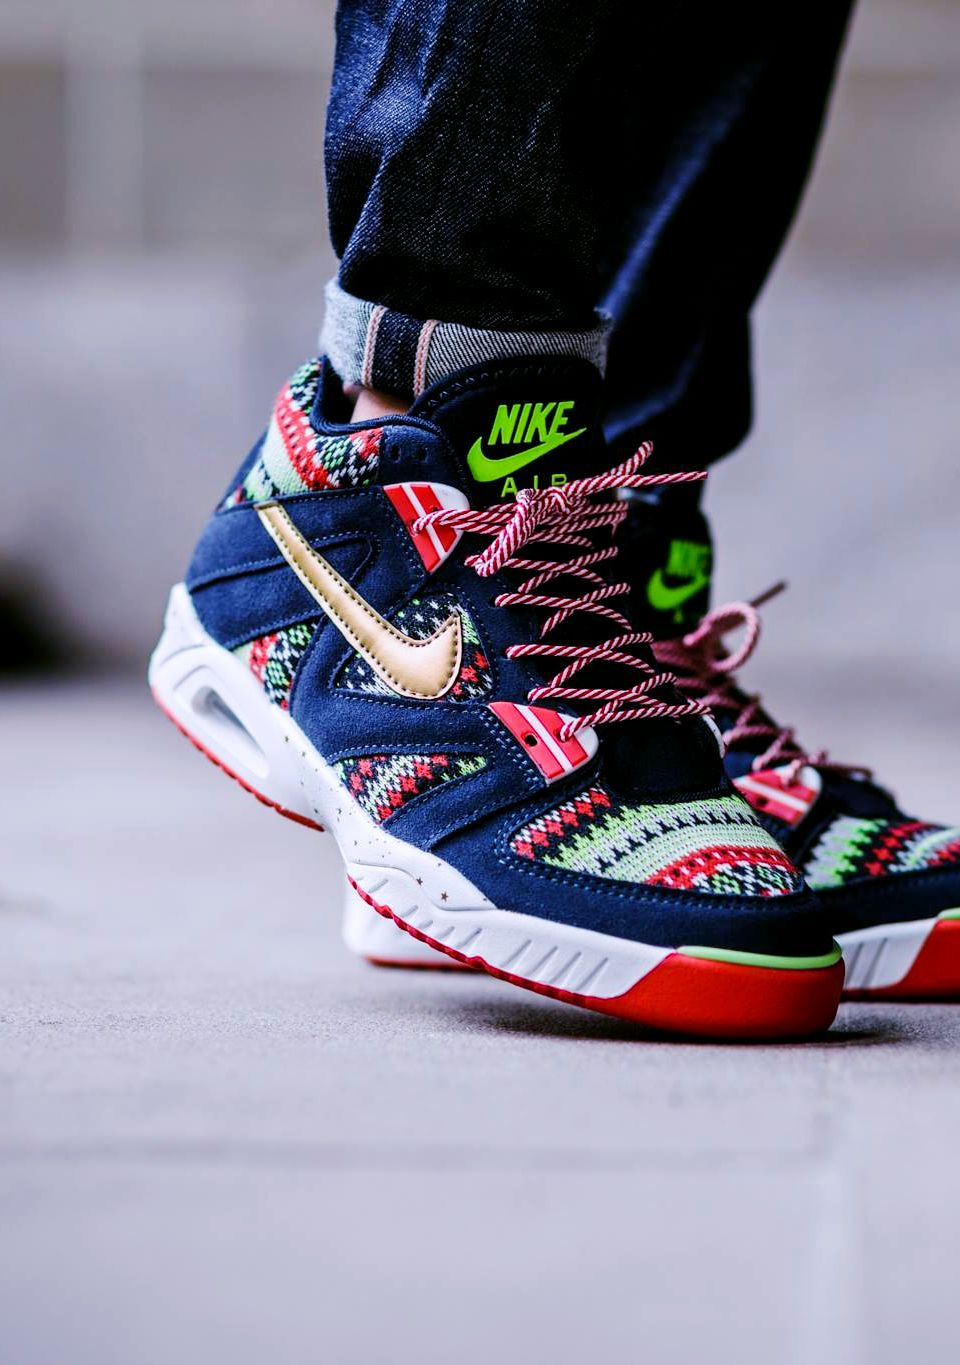 UNSTABLE FRAGMENTS Nike, New sneakers, New sneaker releases